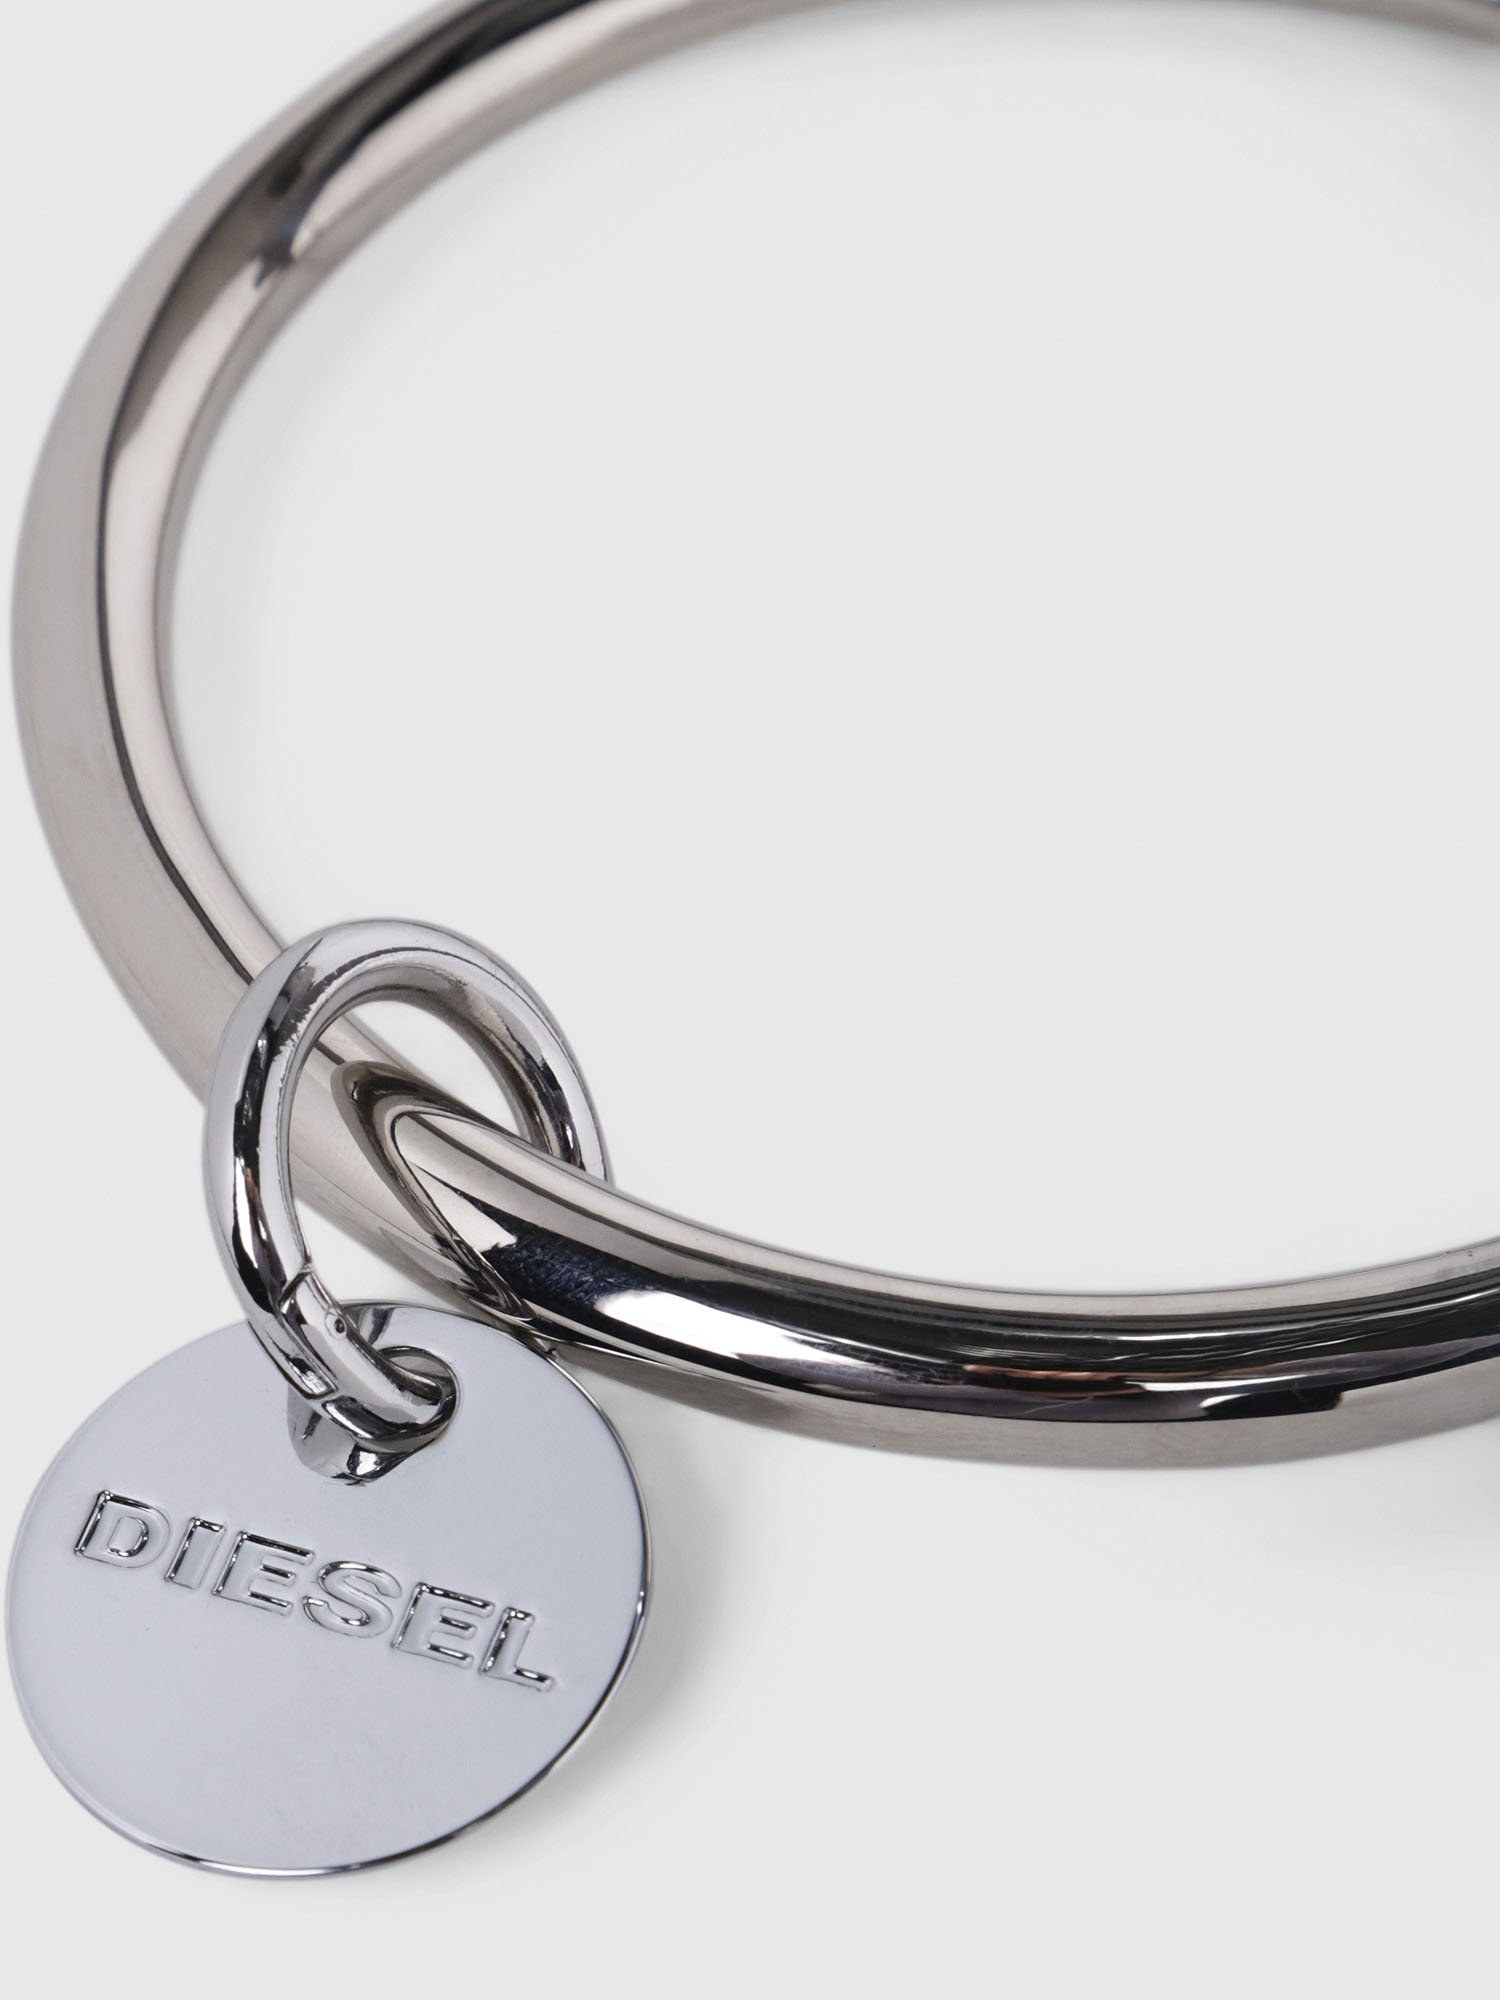 Diesel - CL-METAL BANGLE,  - Bijoux and Gadgets - Image 3